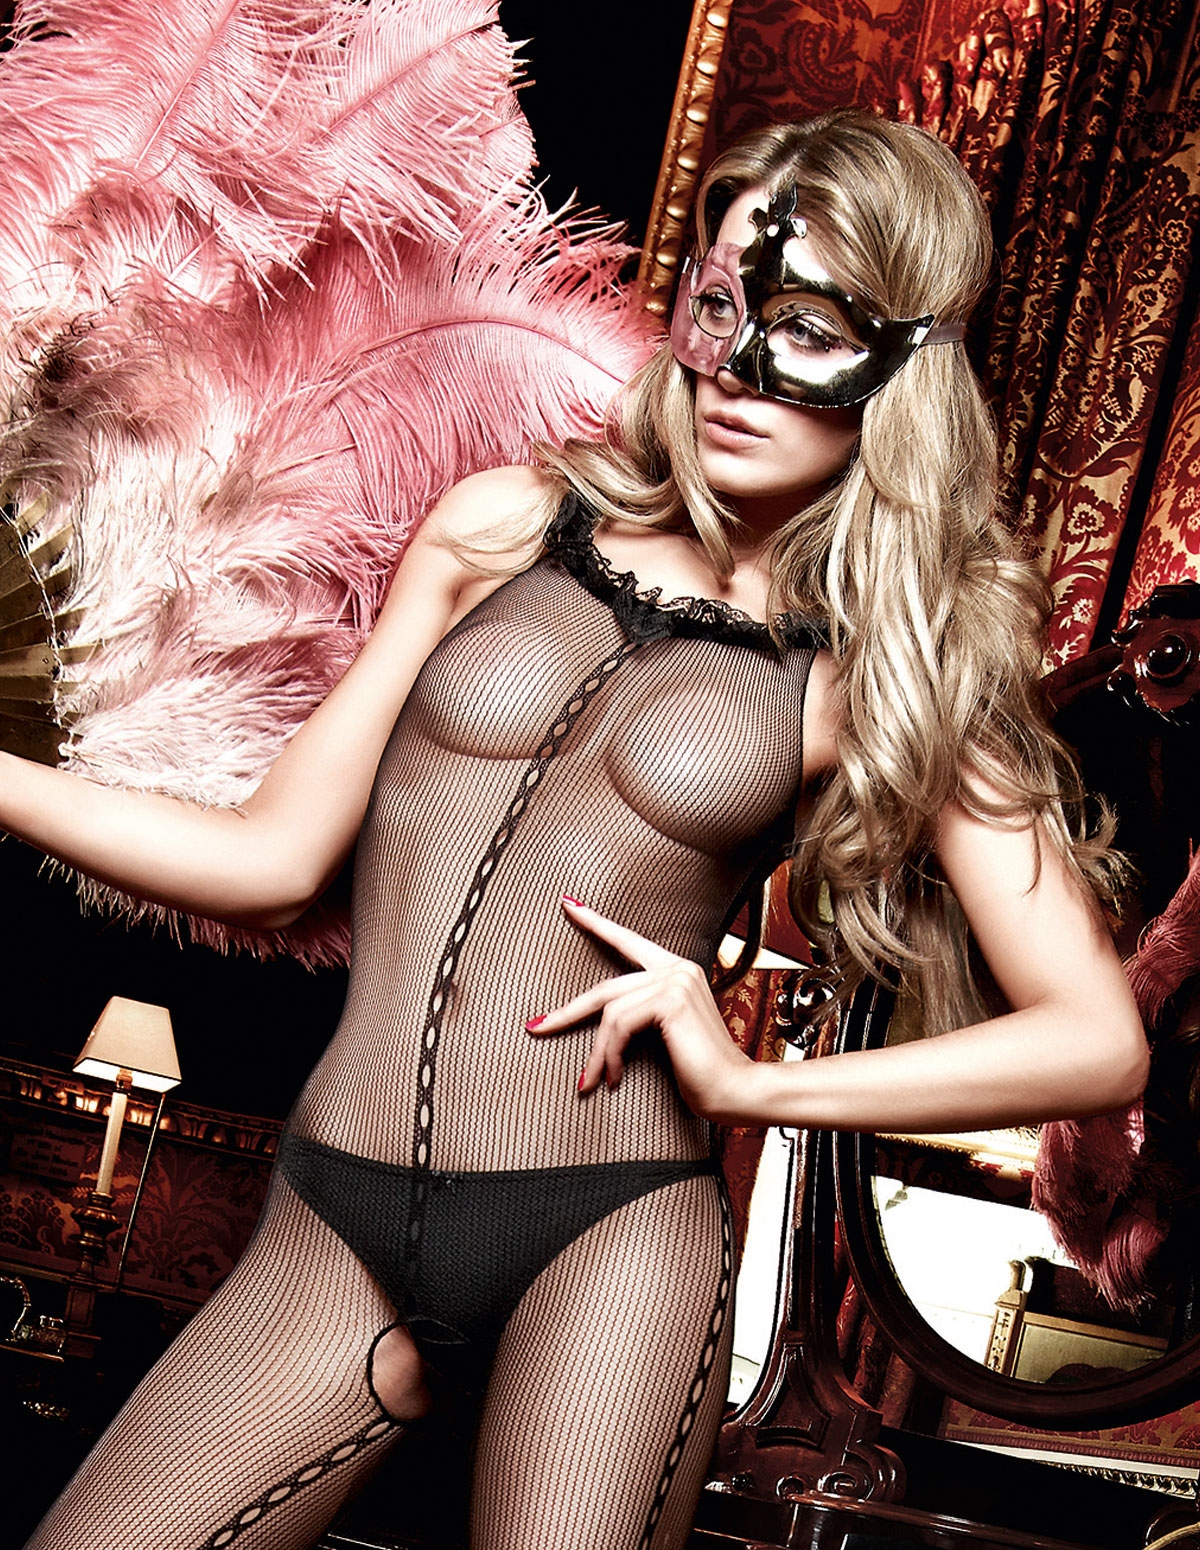 Ruffle Bodystocking